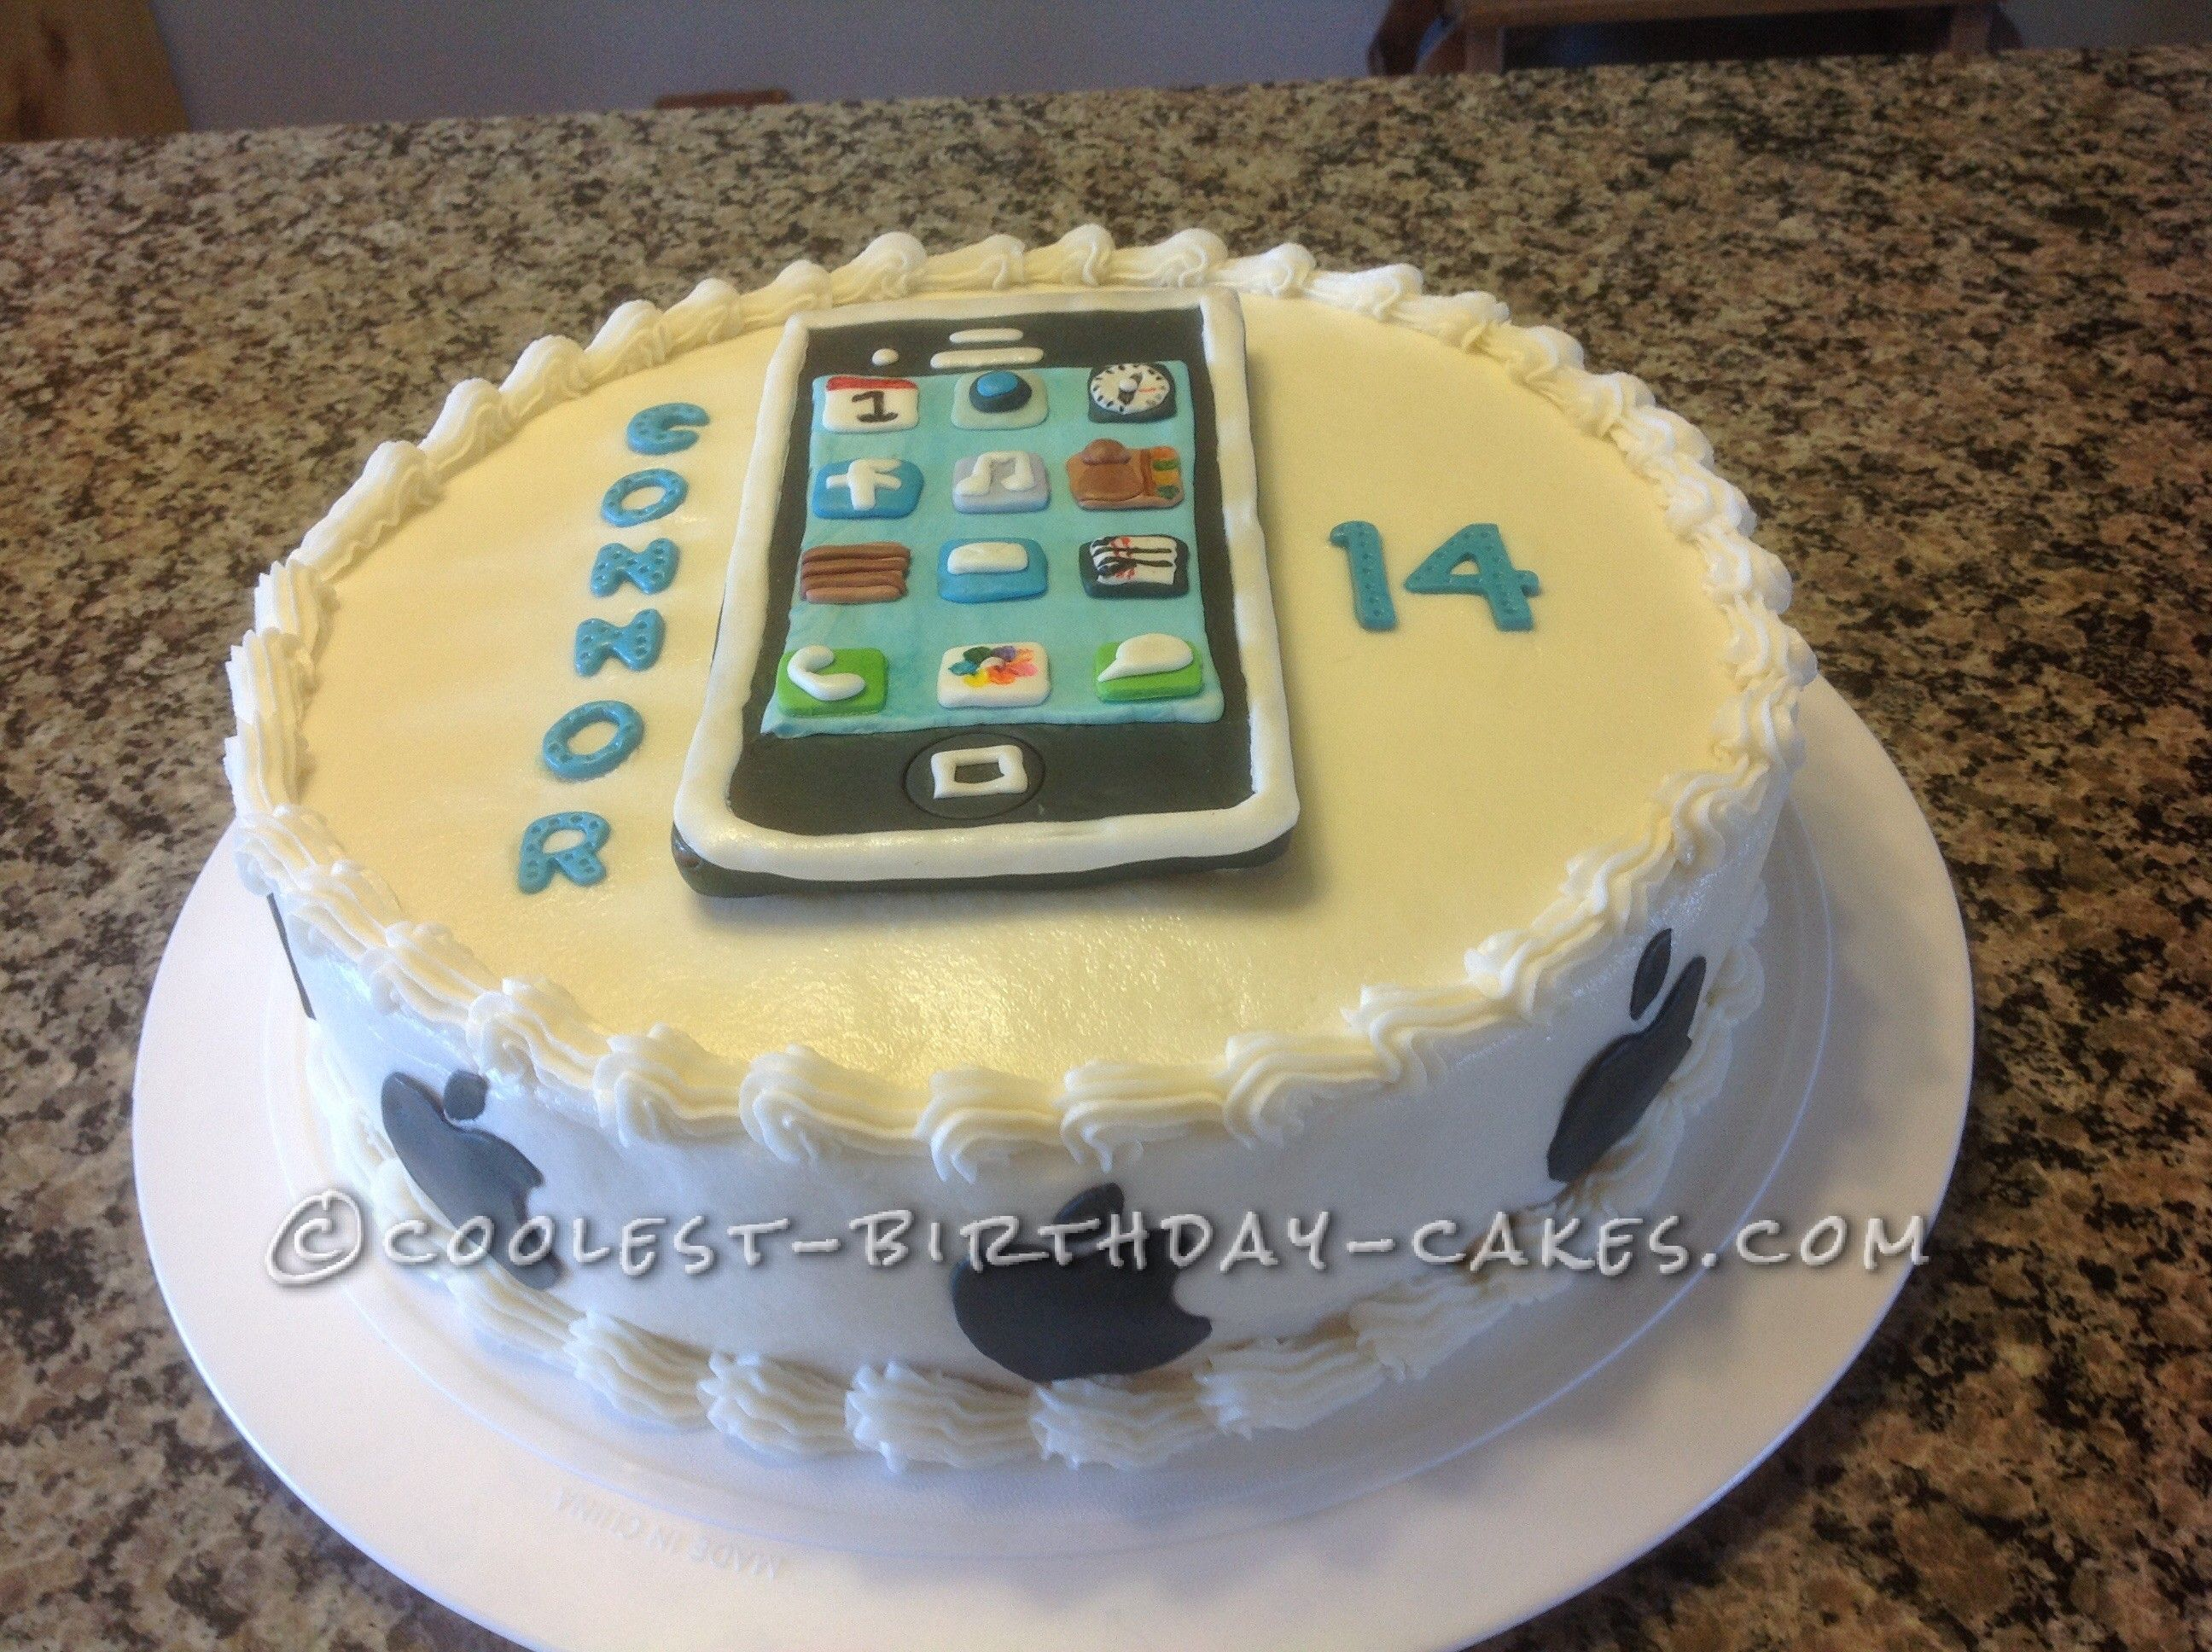 Coolest Chocolate iPhone Cake Iphone cake Birthday cakes and